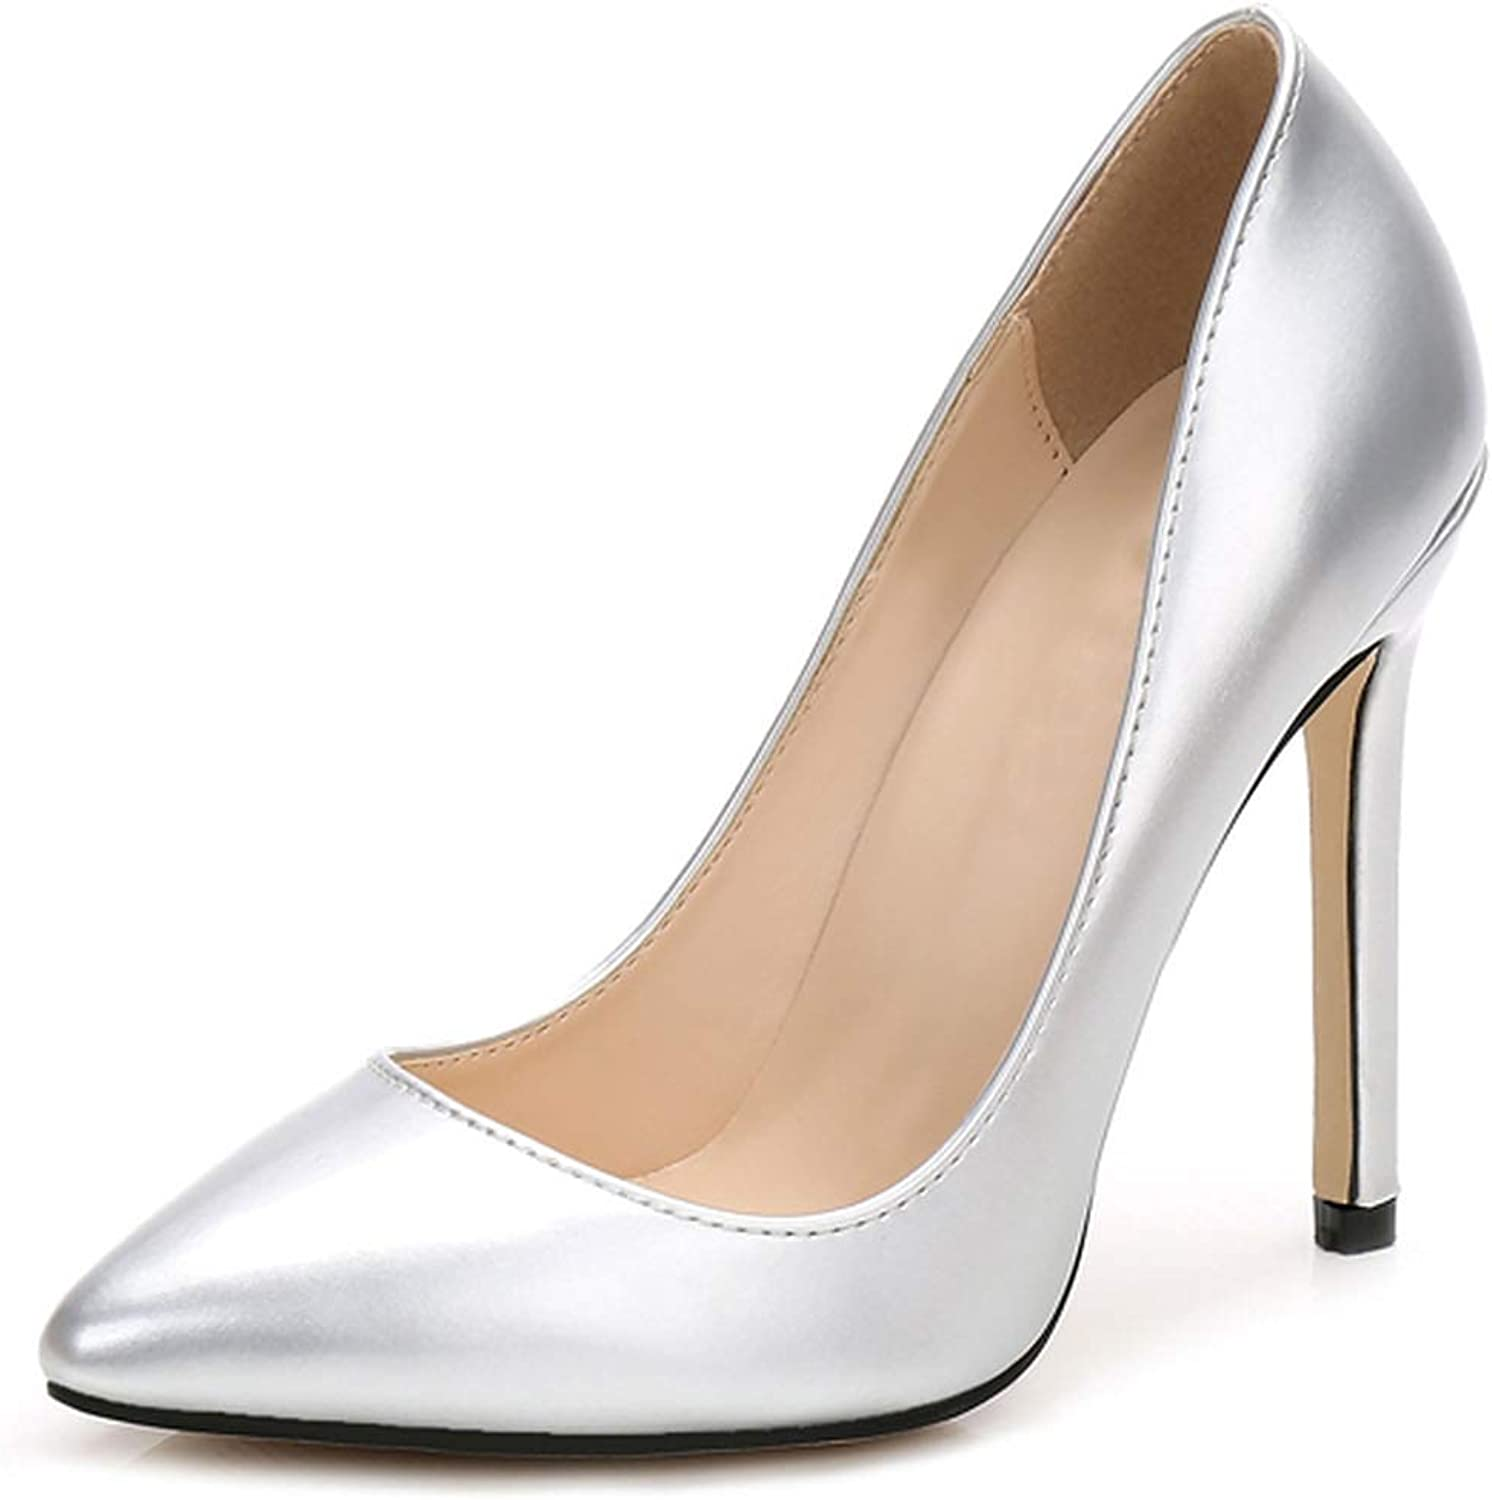 DATAIYANG High Heels Women Pumps Thin Classic Sexy Prom Wedding shoes Office Big Size Leather